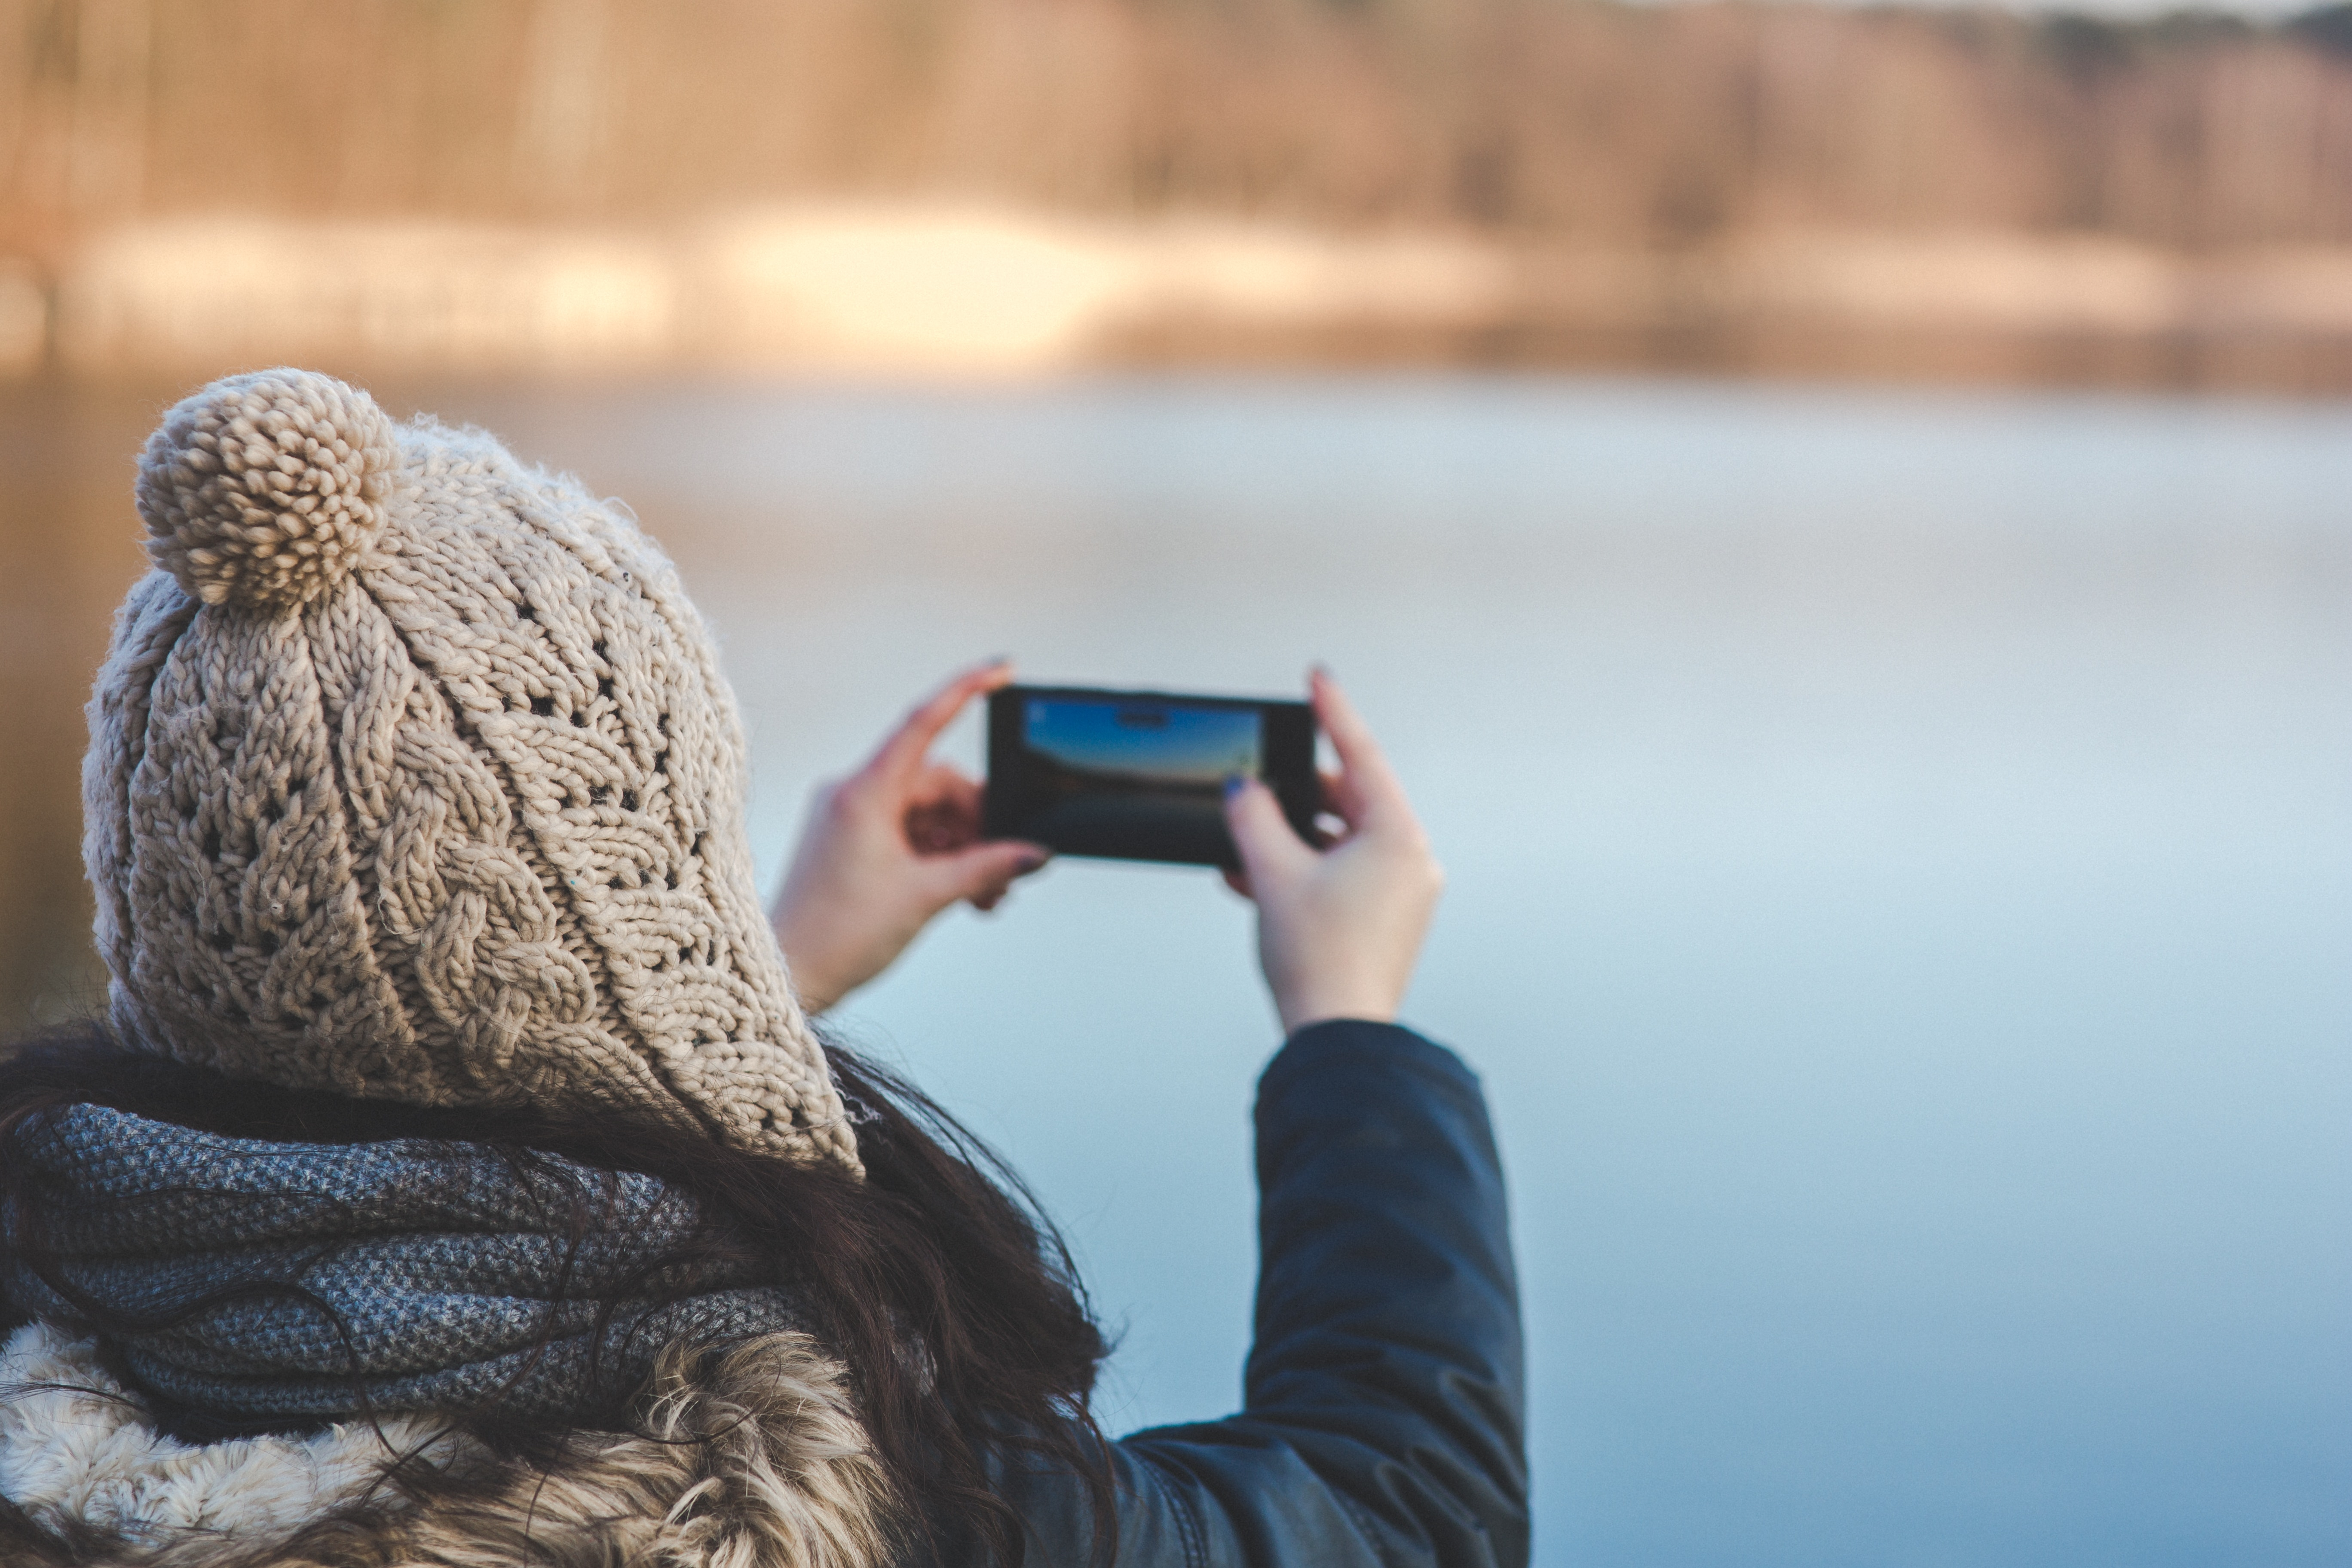 Back view of a woman taking photo with a smartphone